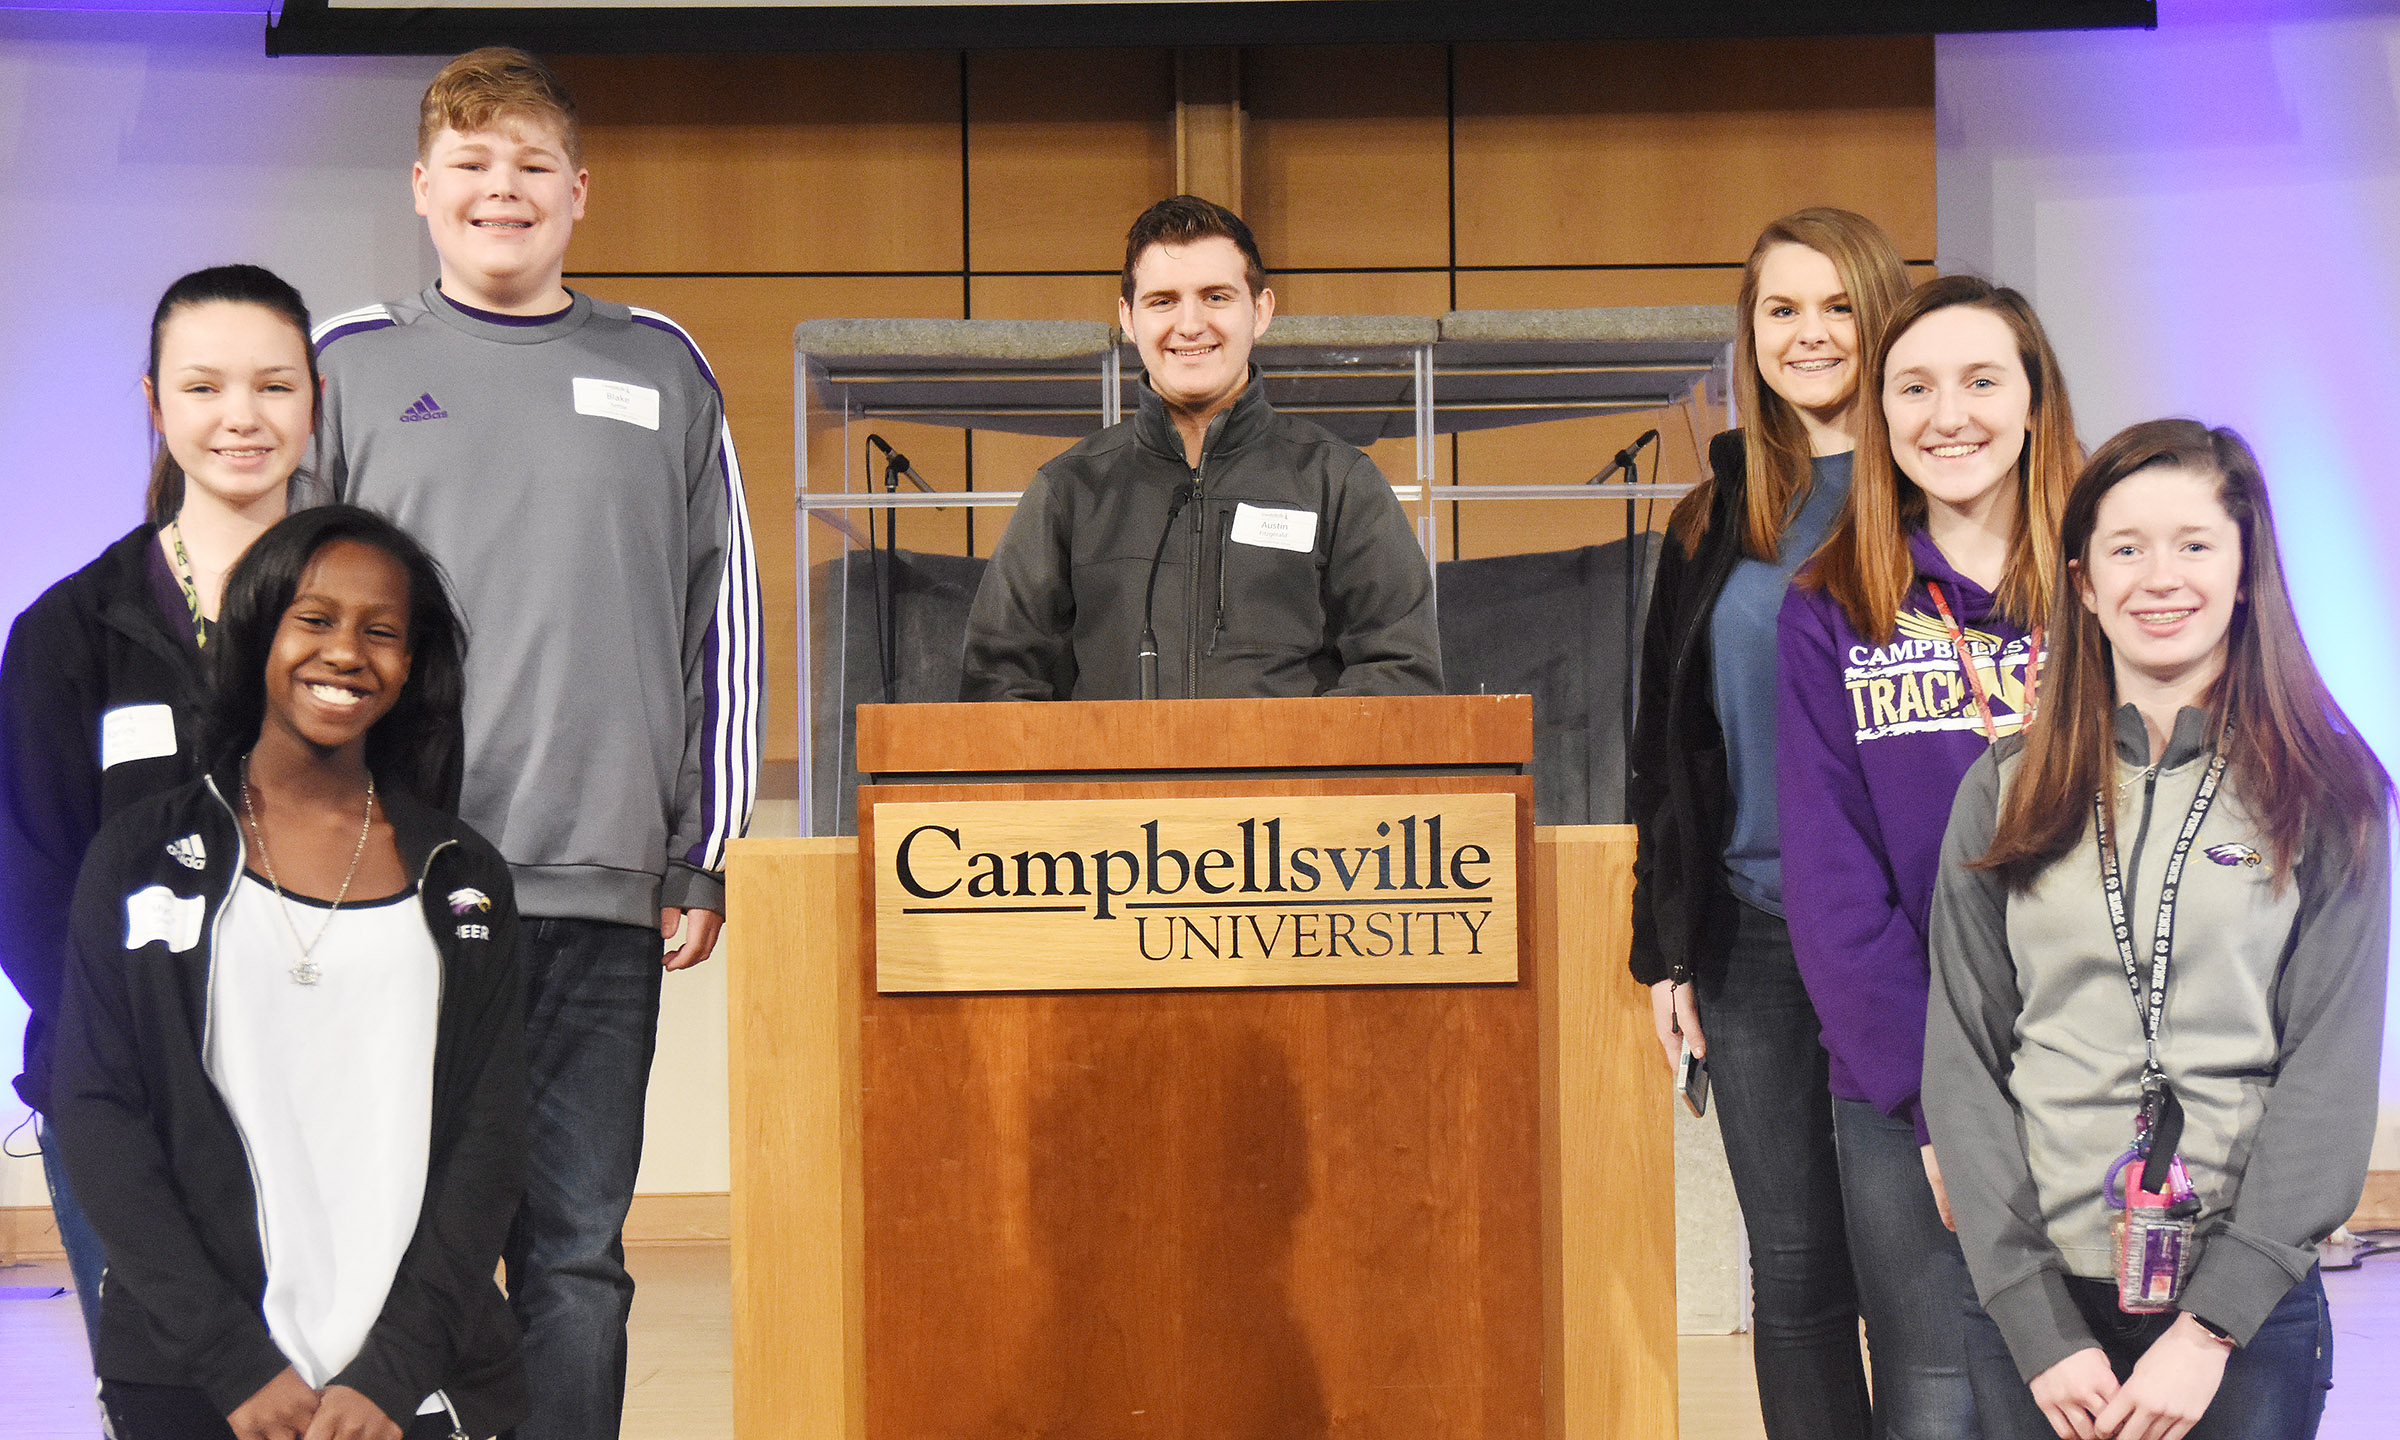 Campbellsville middle and high school students attending the Kentucky High School Journalism Association workshop are, from left, front, eighth-grader Myricle Gholston and Gracyne Hash. Second row, eighth-grader Karley Morris and sophomore Zoe McAninch. Back, eighth-grader Blake Settle, senior Austin Fitzgerald and freshman Taylor Knight.